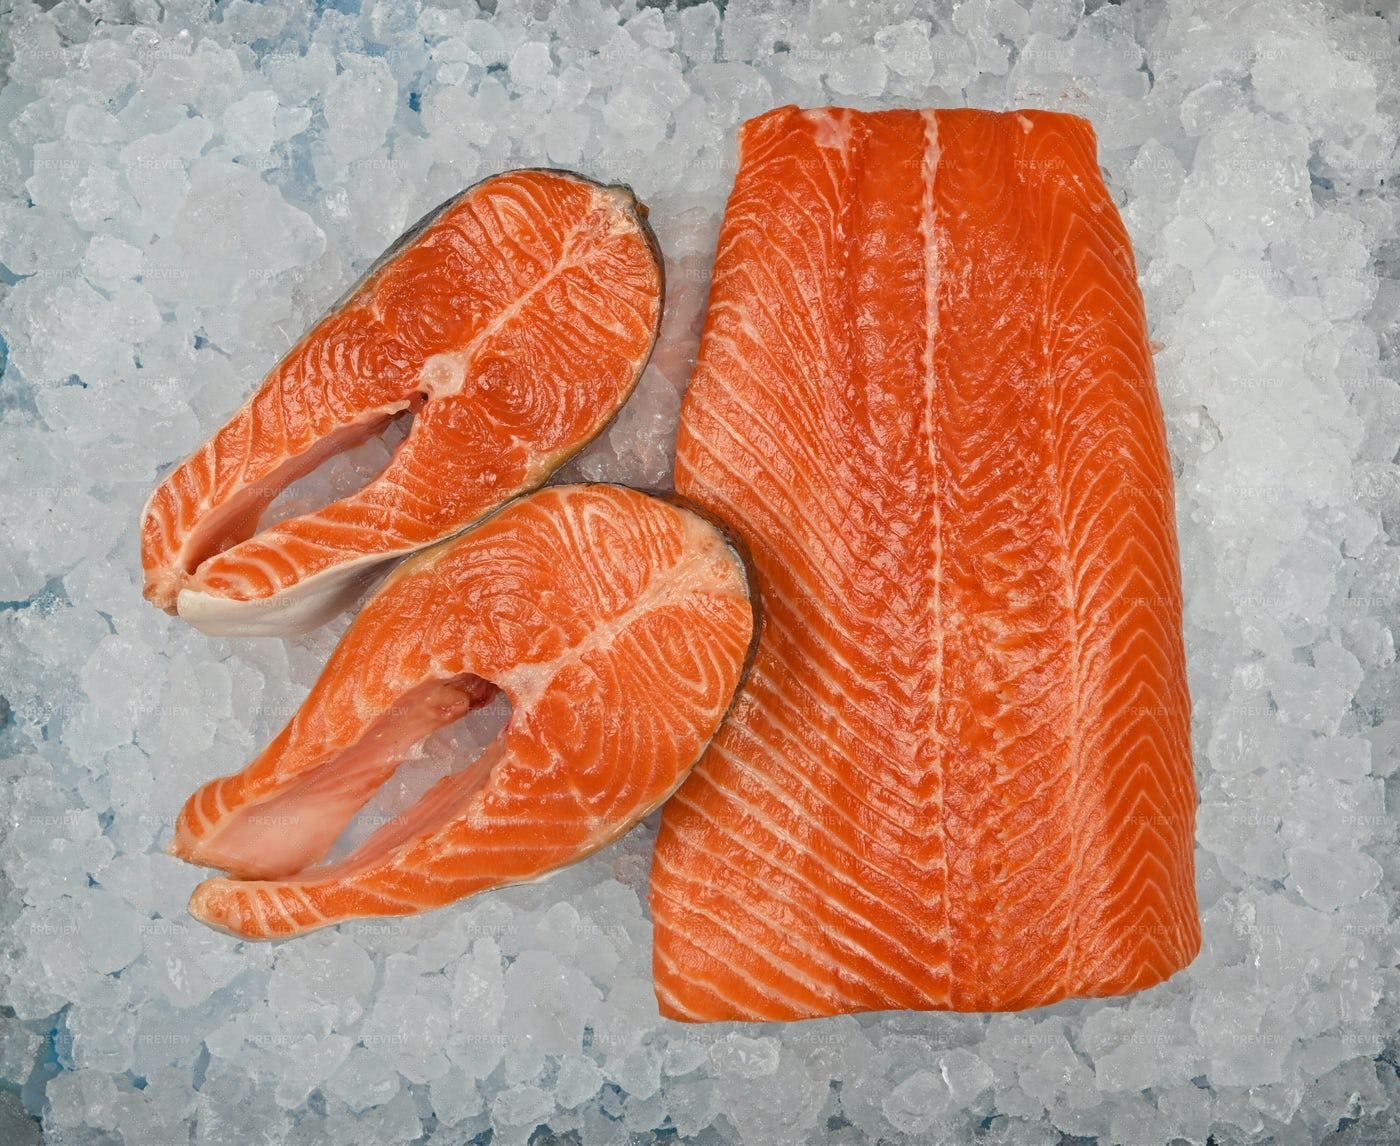 Raw Salmon Fillet And Steaks: Stock Photos